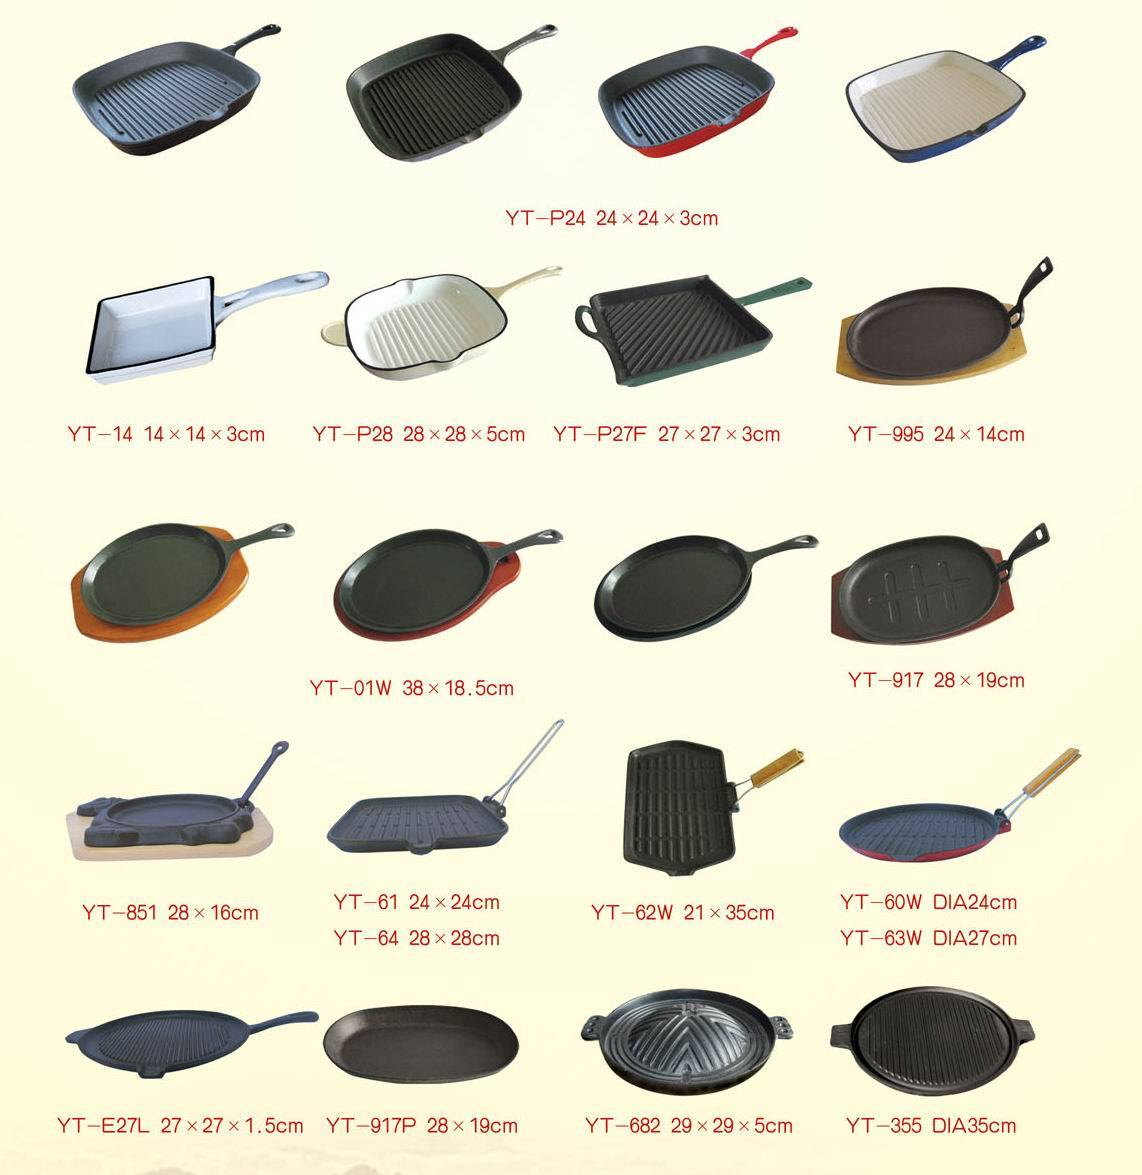 Cast iron cookware and bake ware frying pan skillets